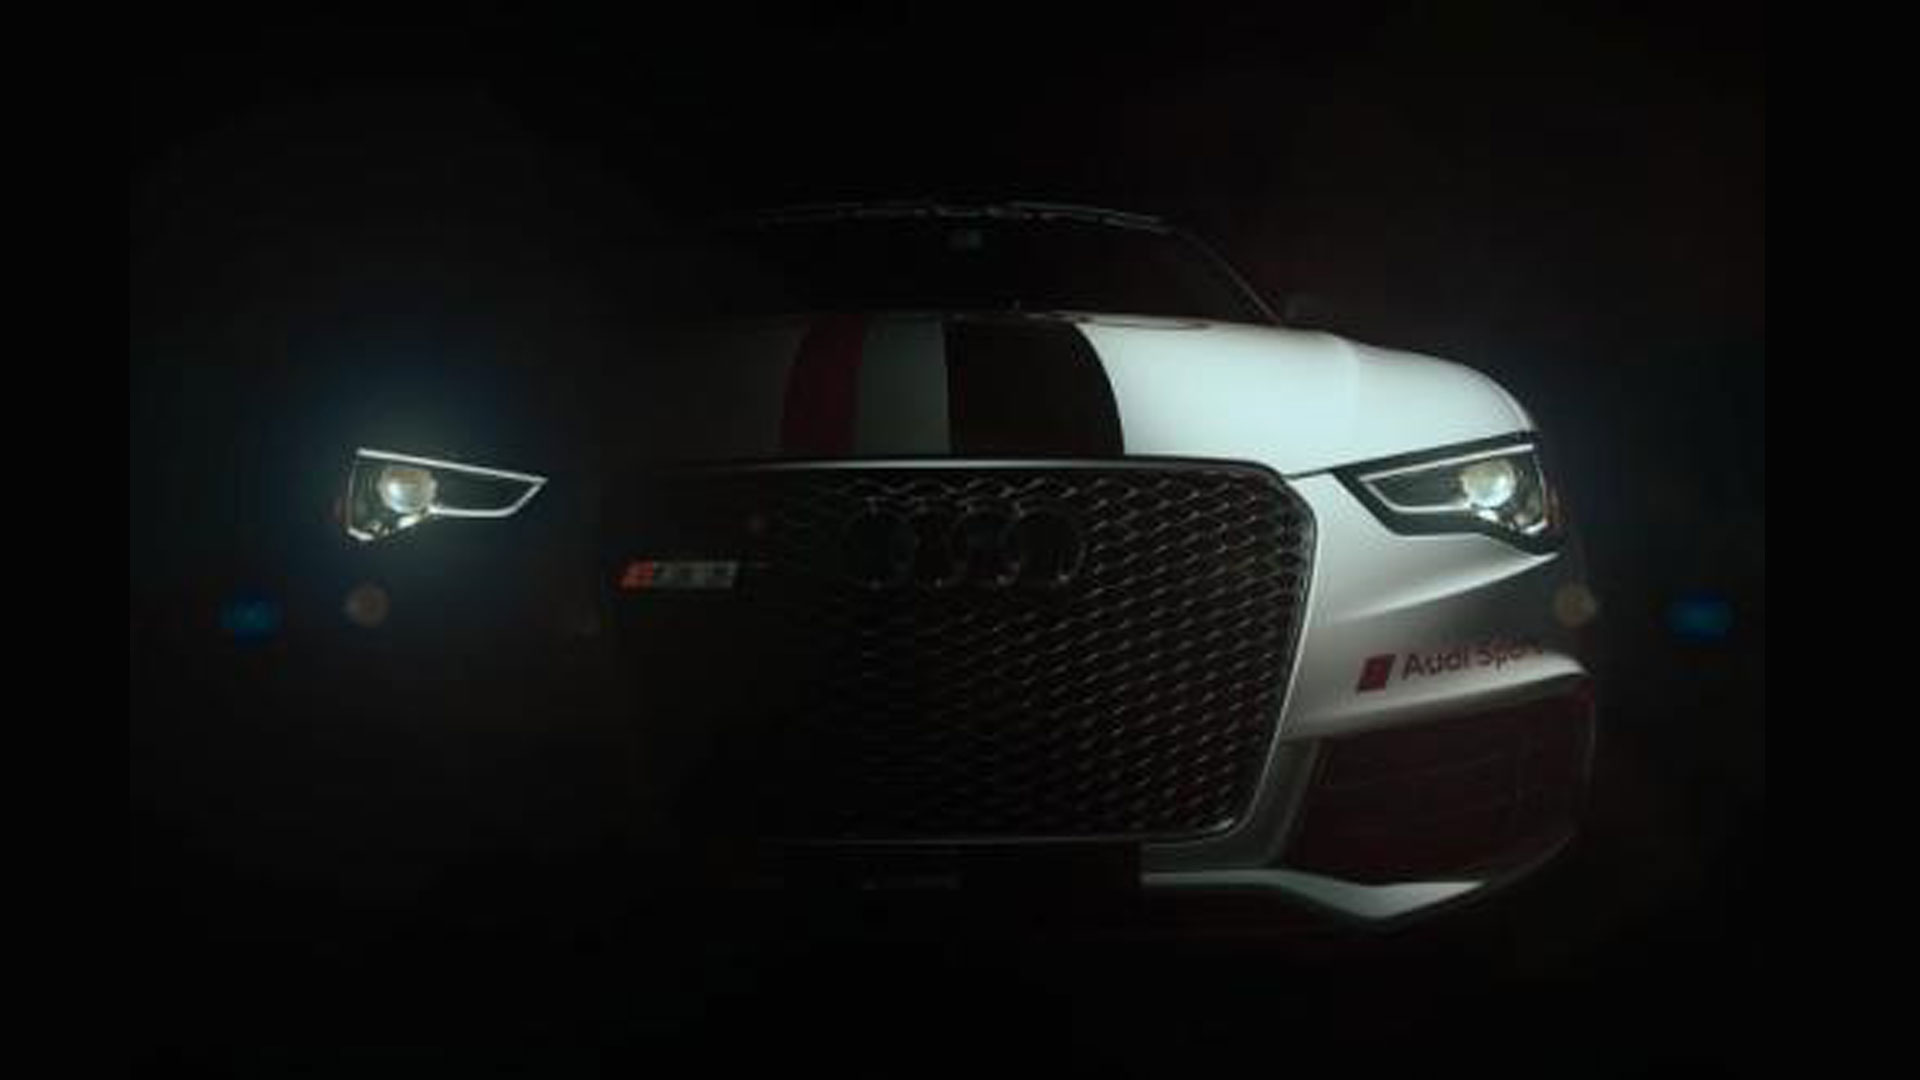 Audi-RS5-Pikes-Peak-Wallpaper.jpg